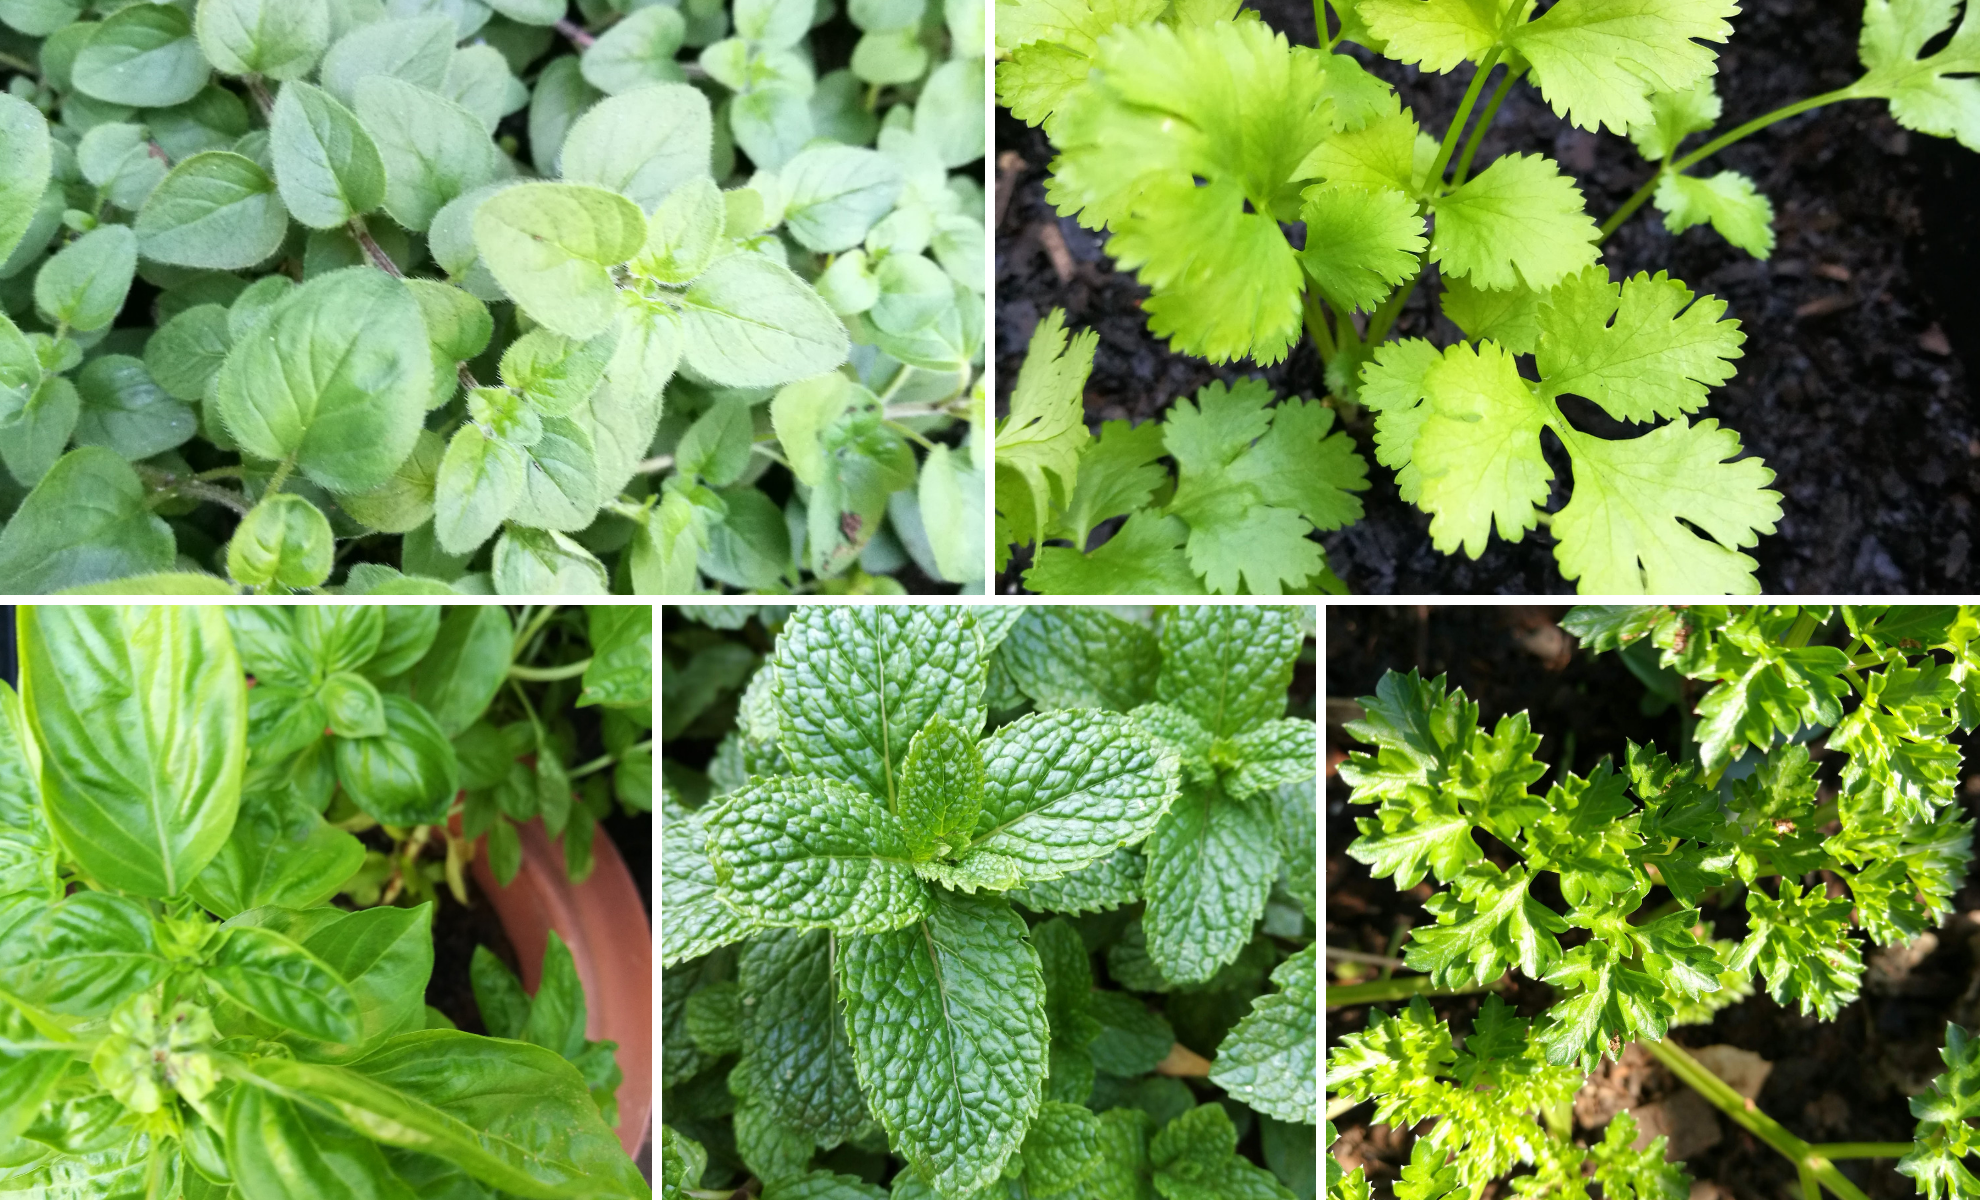 It is much easier than you think to grow herbs in containers and plant pots, both inside and out.